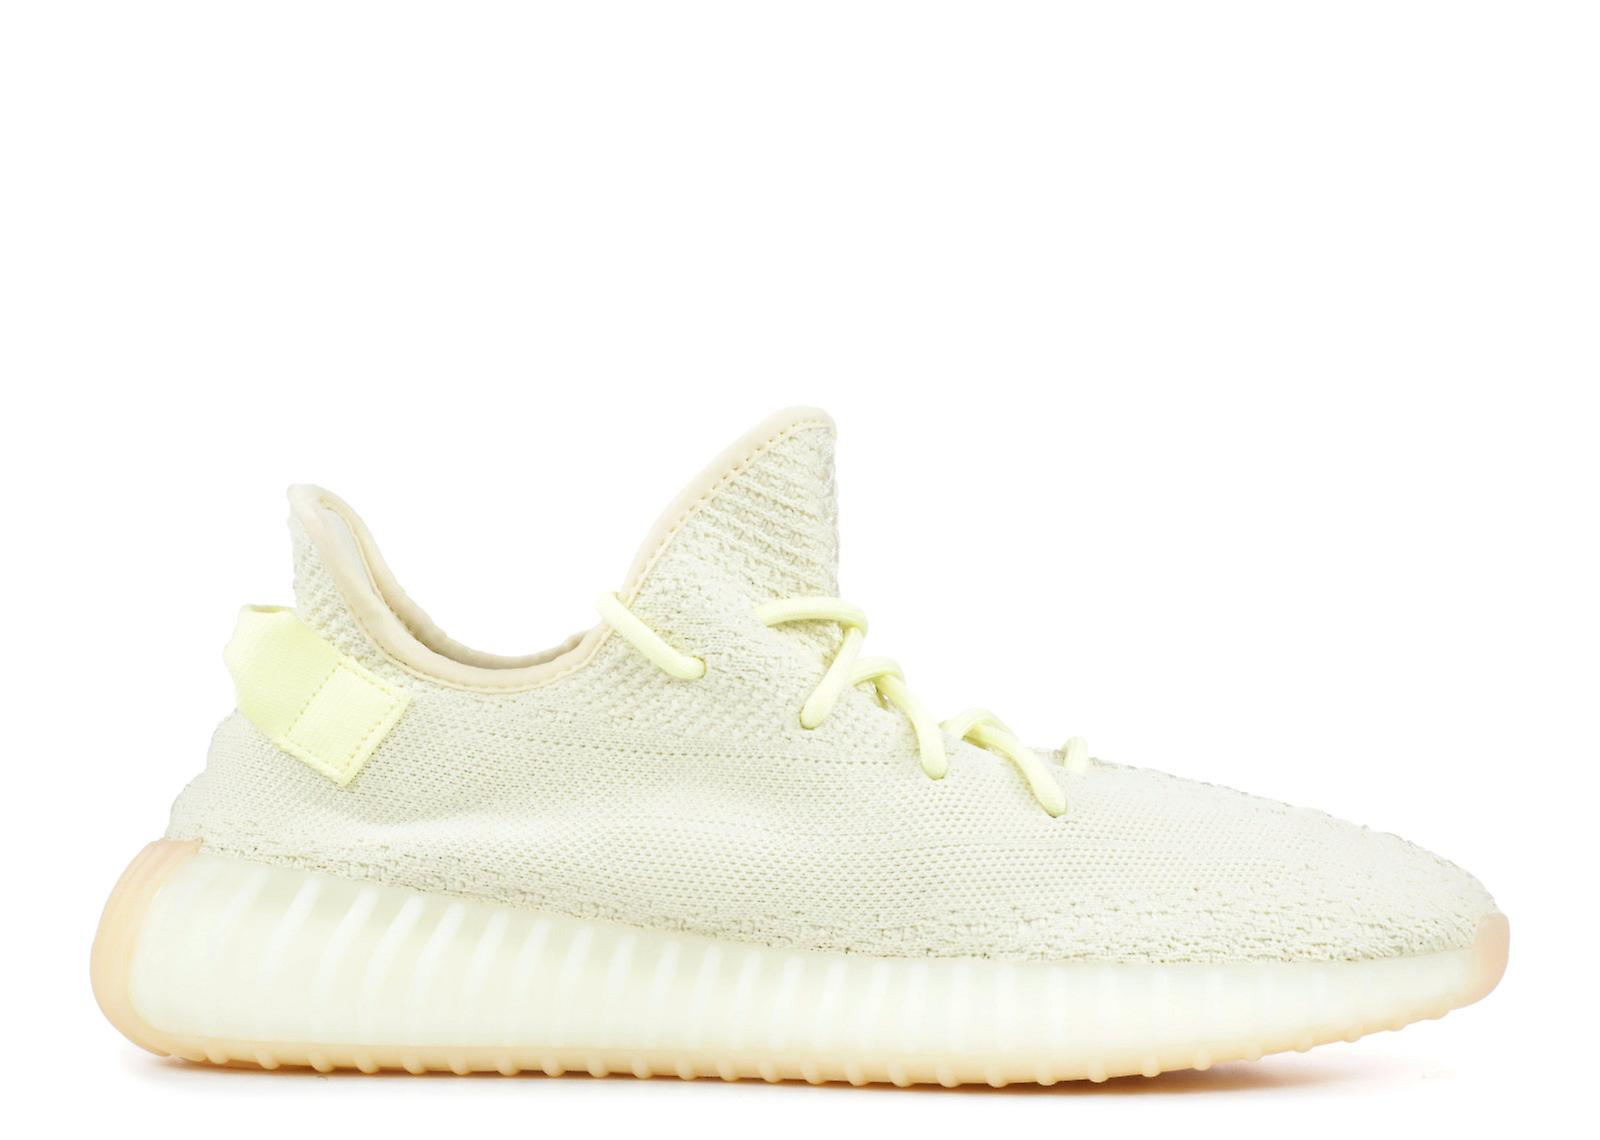 Adidas Yeezy Boost 350 V2 'Butter' F36980 Shoes